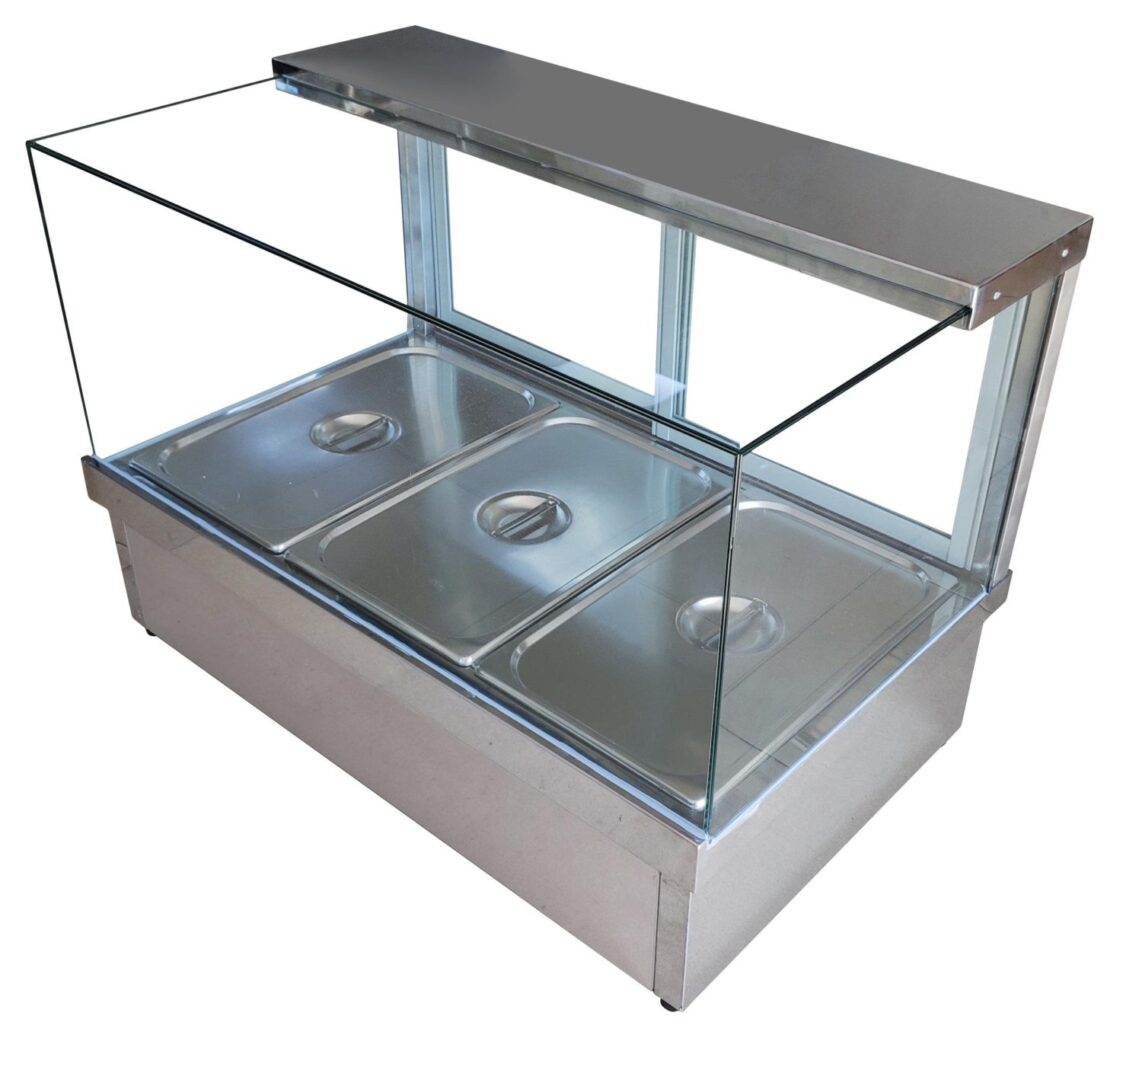 Cookrite CRB-10 Hot Food Display 1705mm